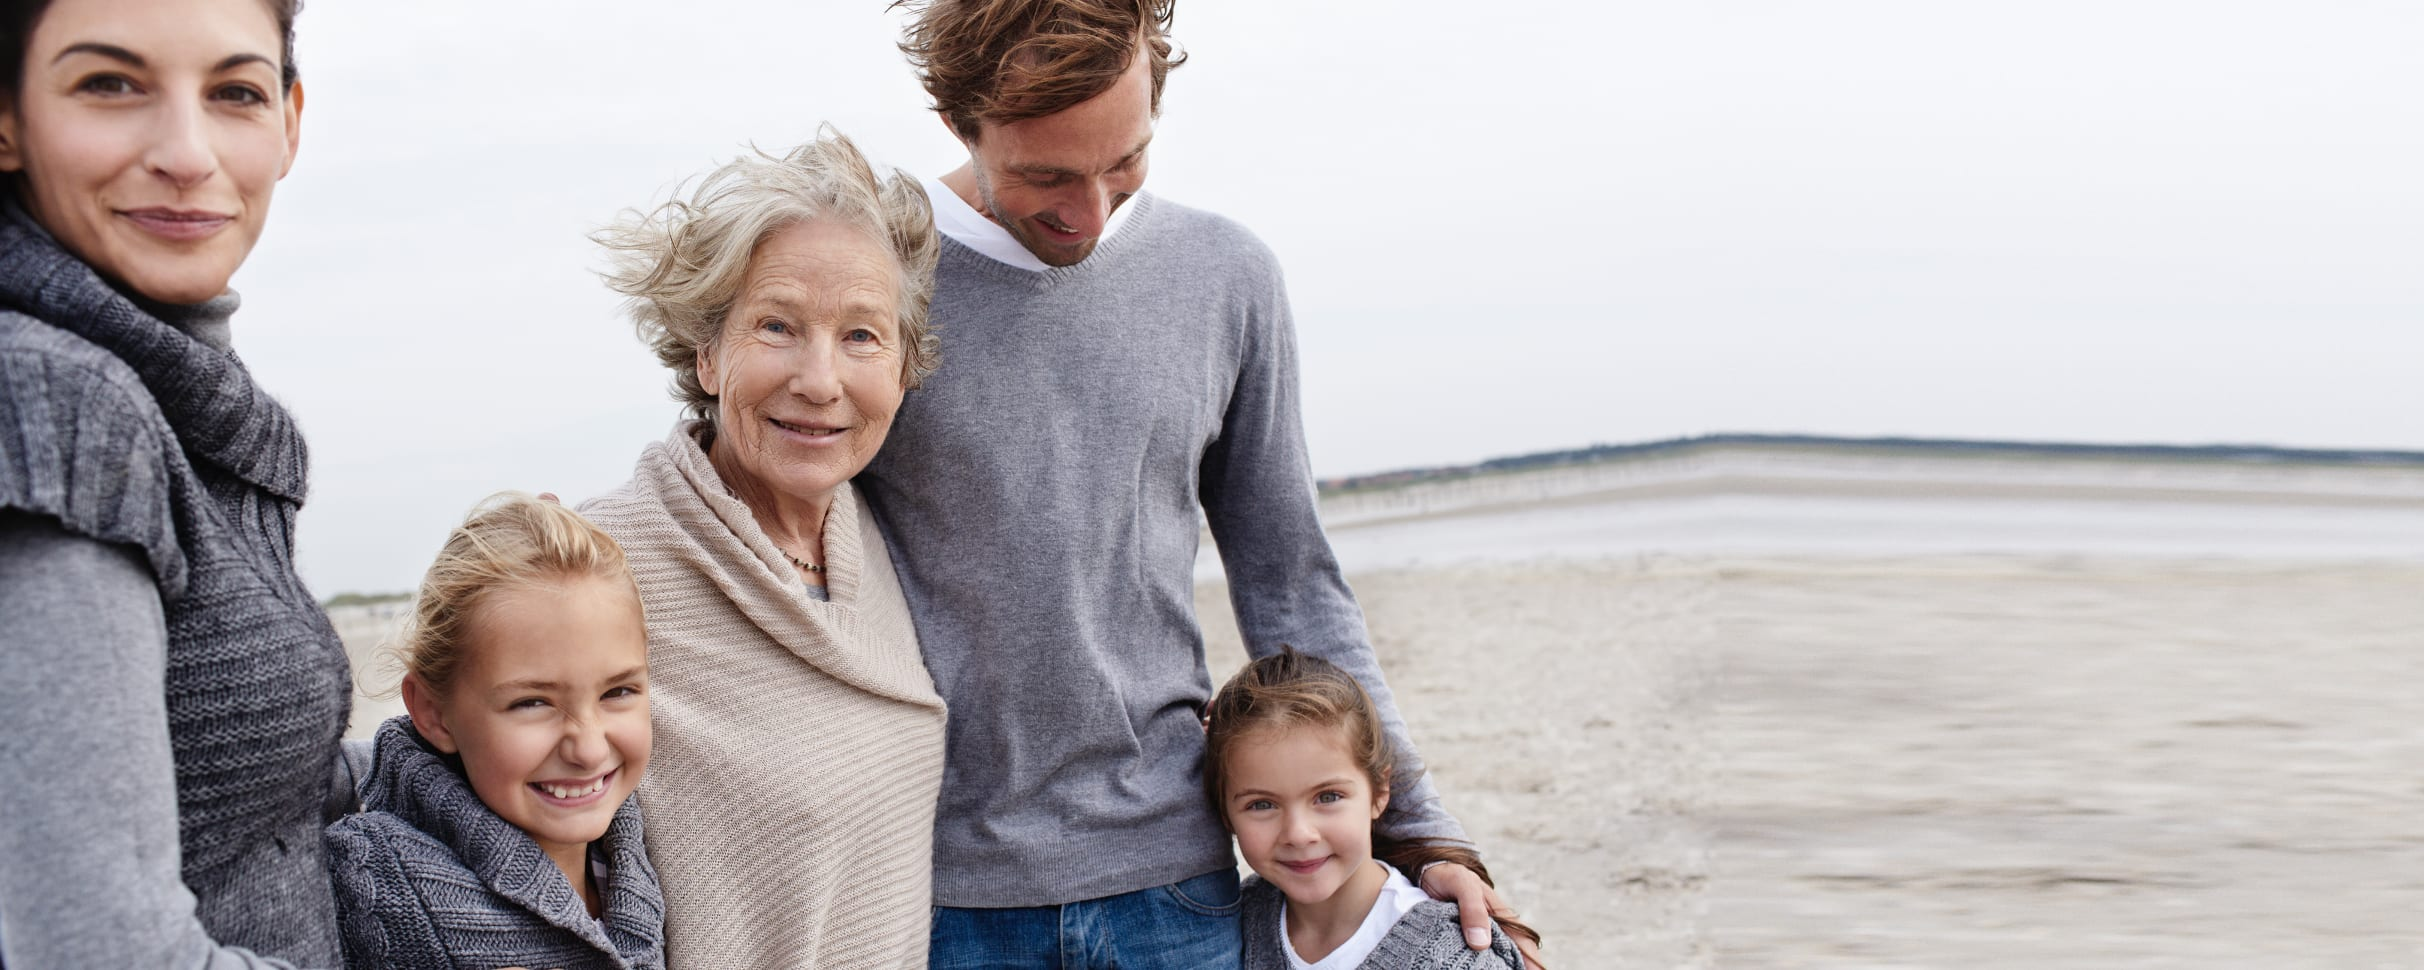 A grandmother at the beach with her children and grandchildren, all smiling at the camera.